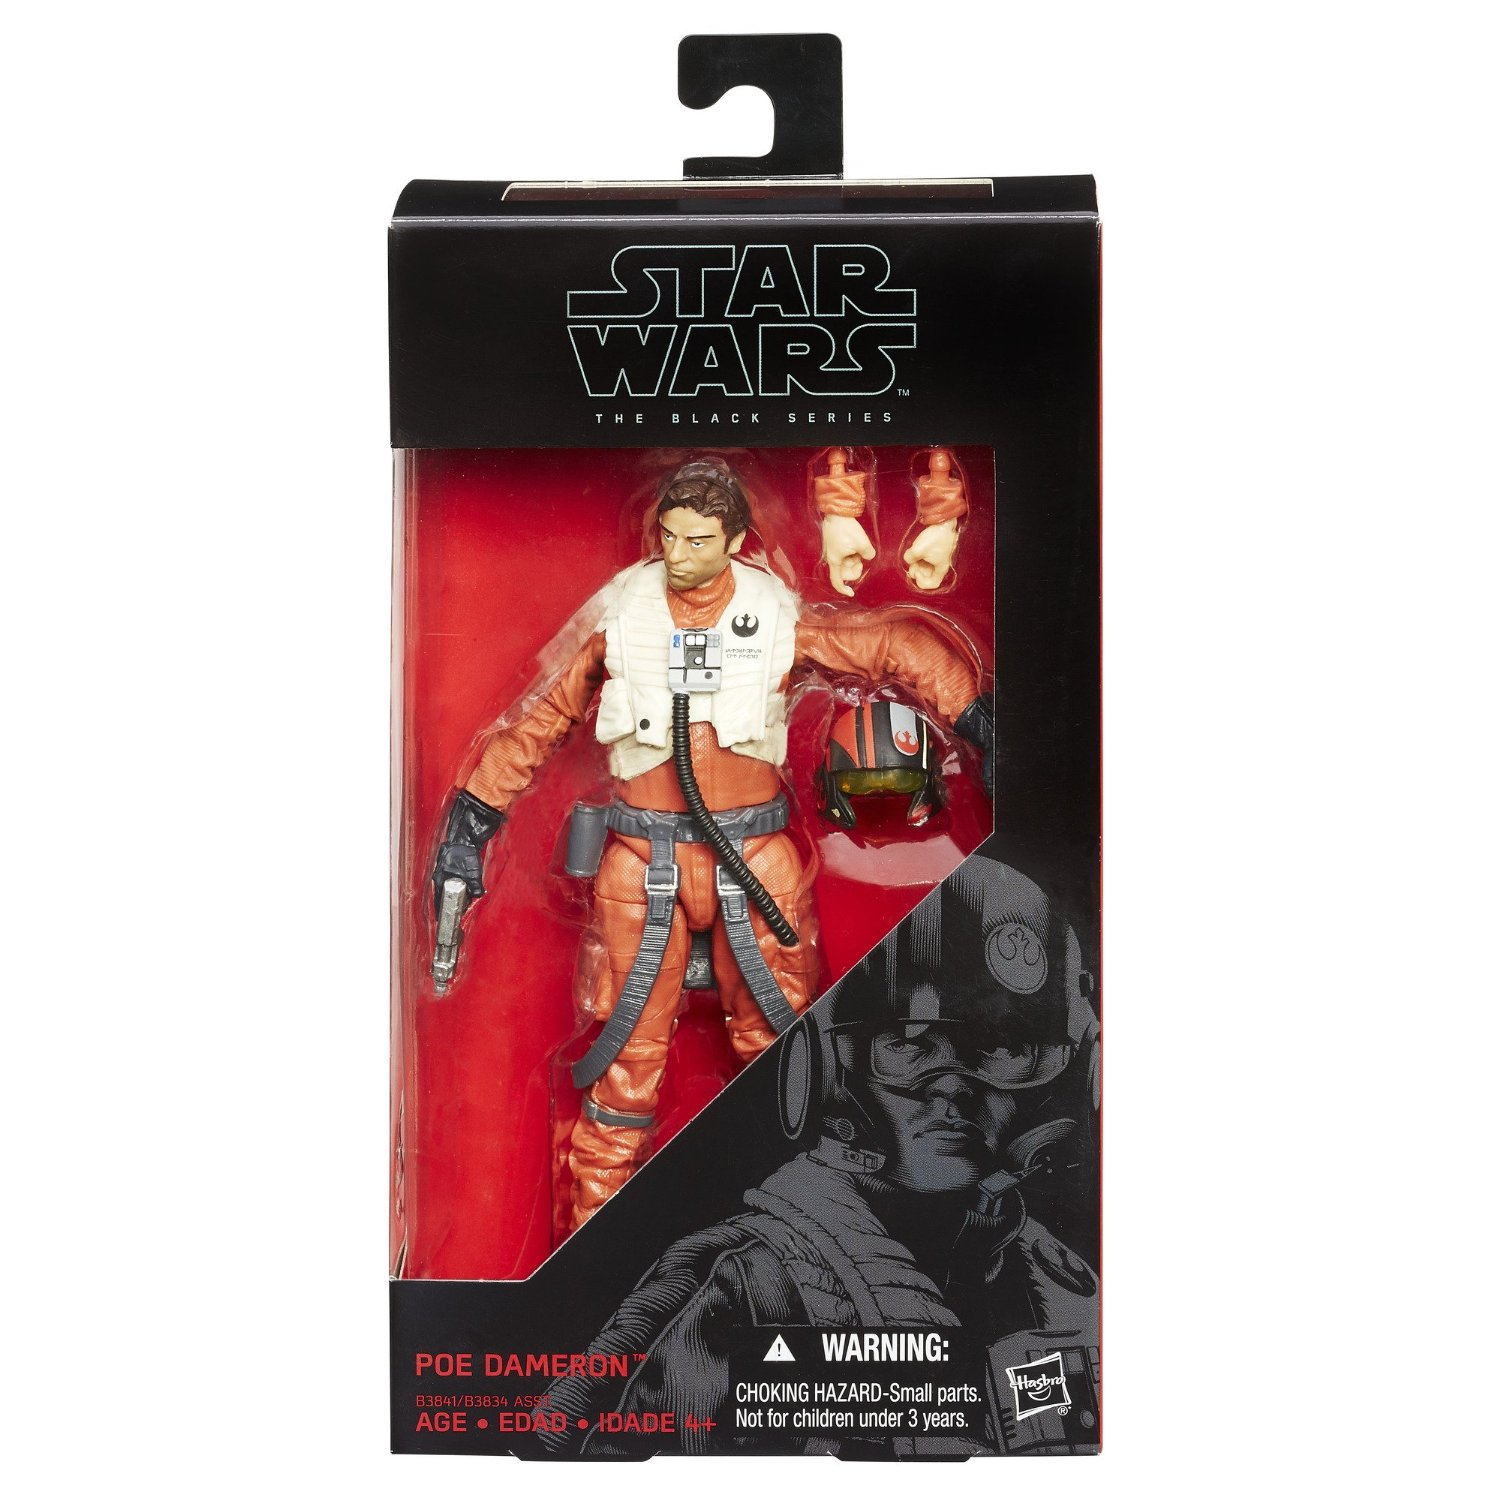 The Force Awakens Black Series 6″ Wave 2 Figure In Stock At Amazon